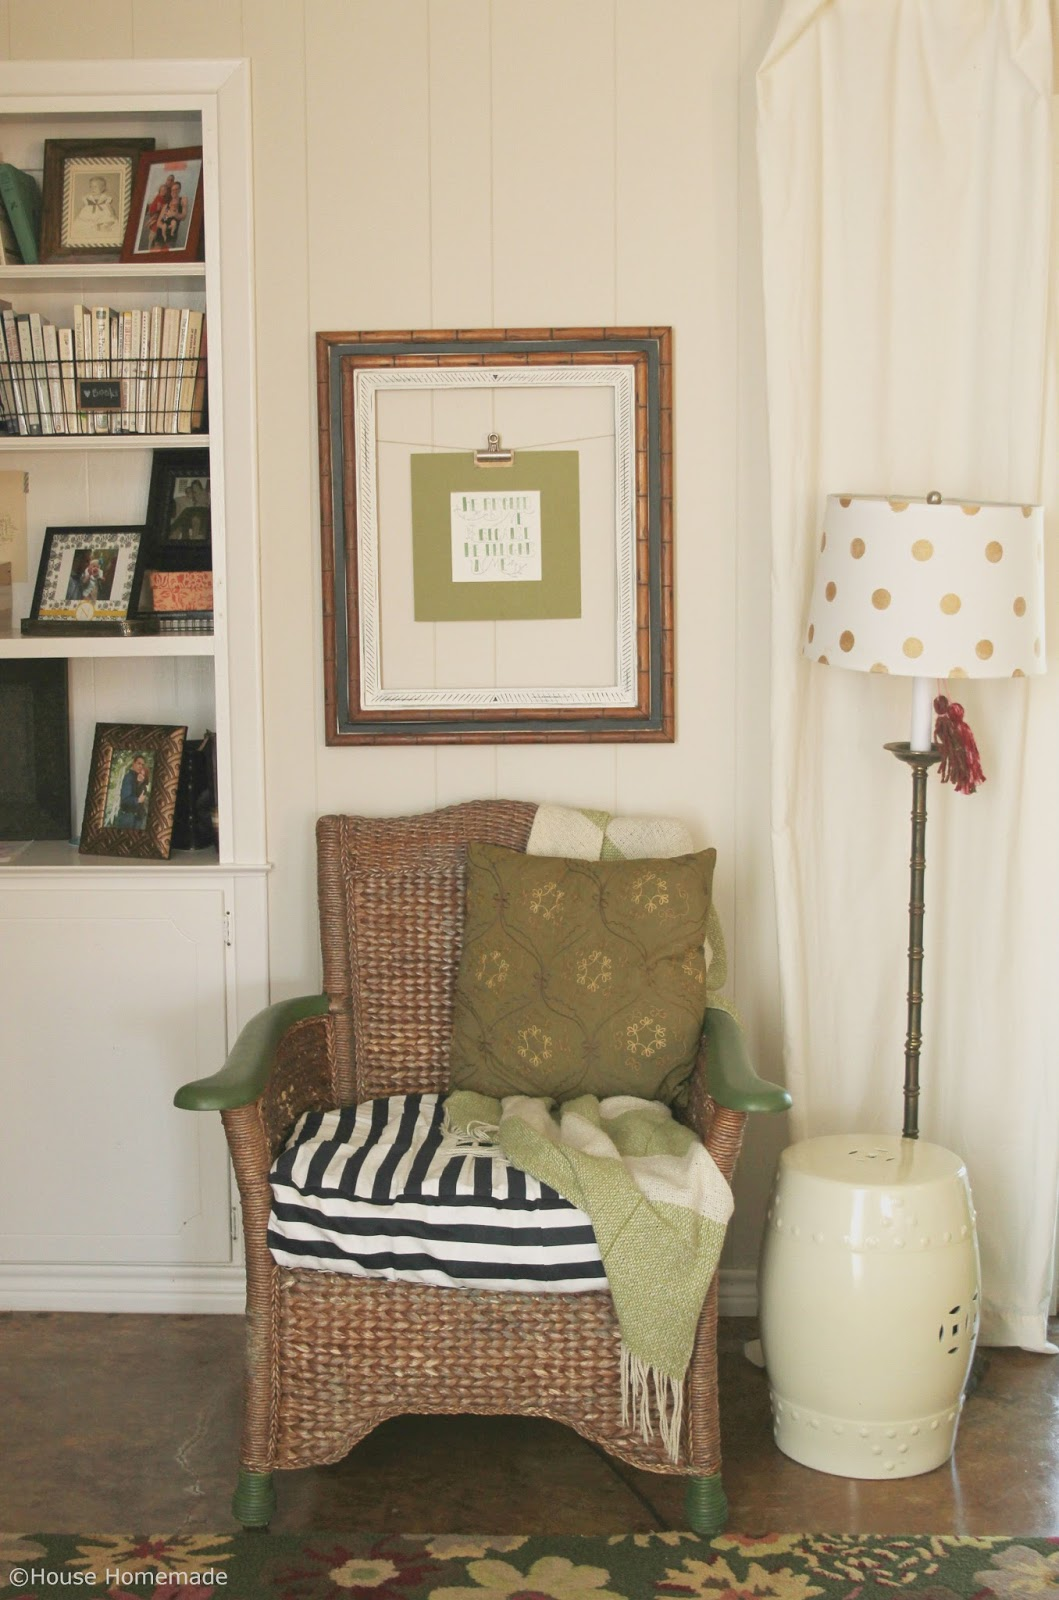 House Homemade: Open Frame Decor- 5 ways